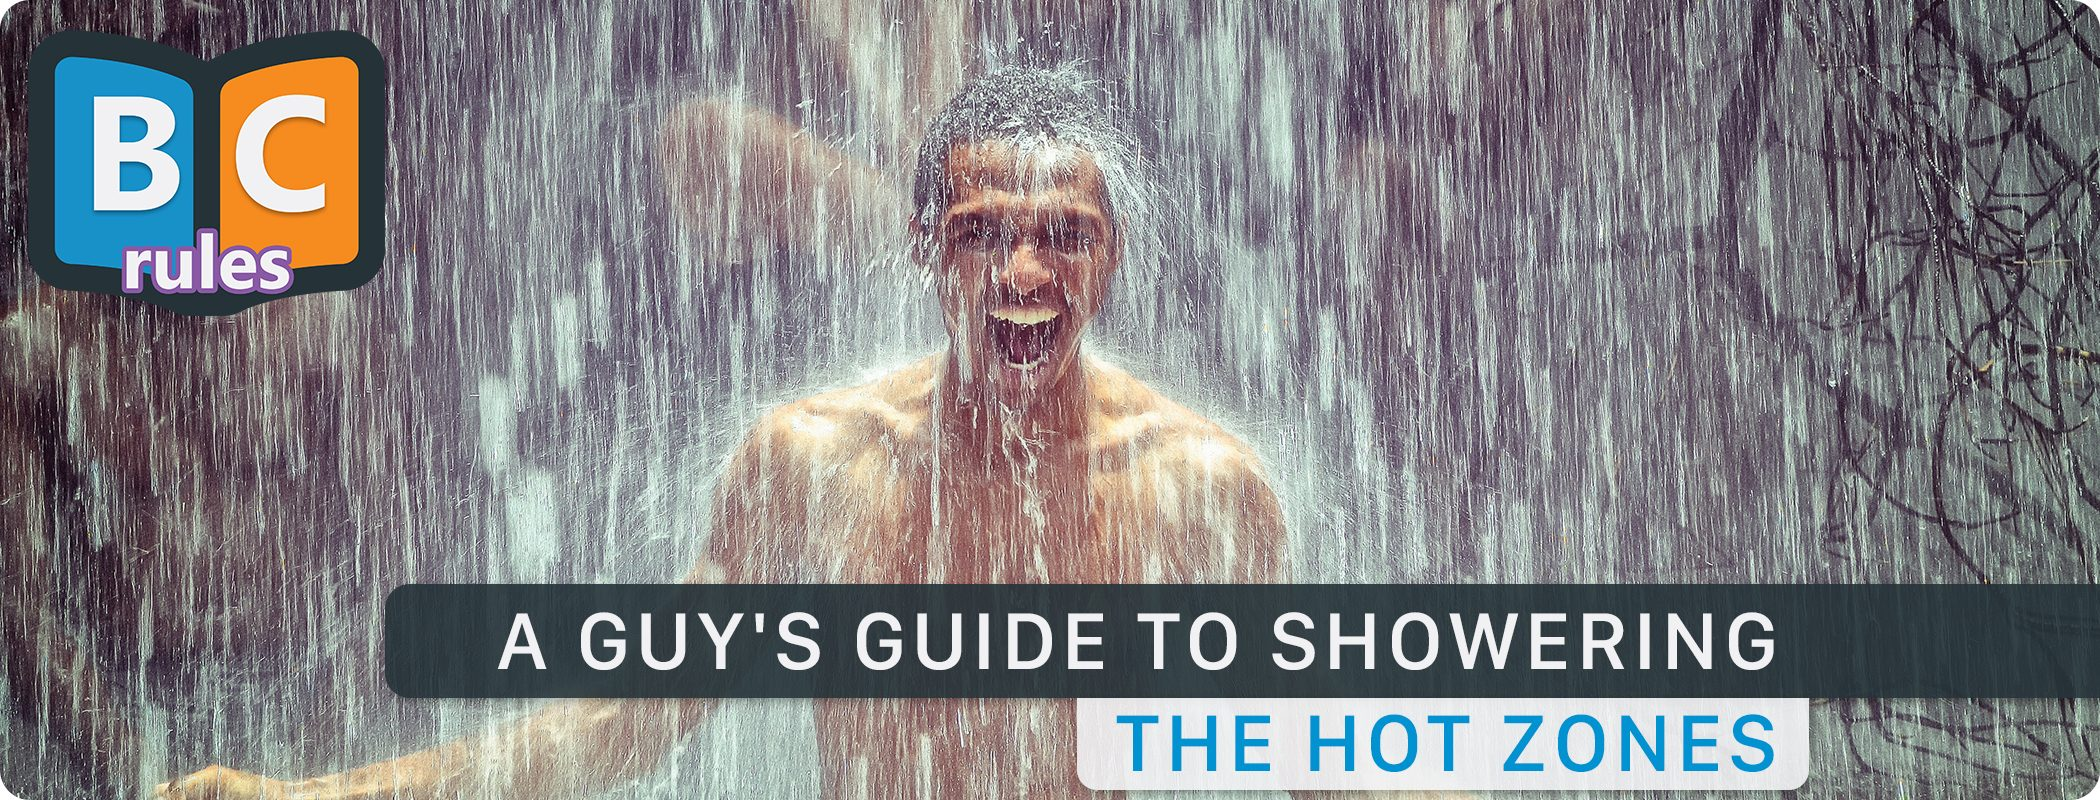 Bro Council Rules: A Man's Guide To Showering